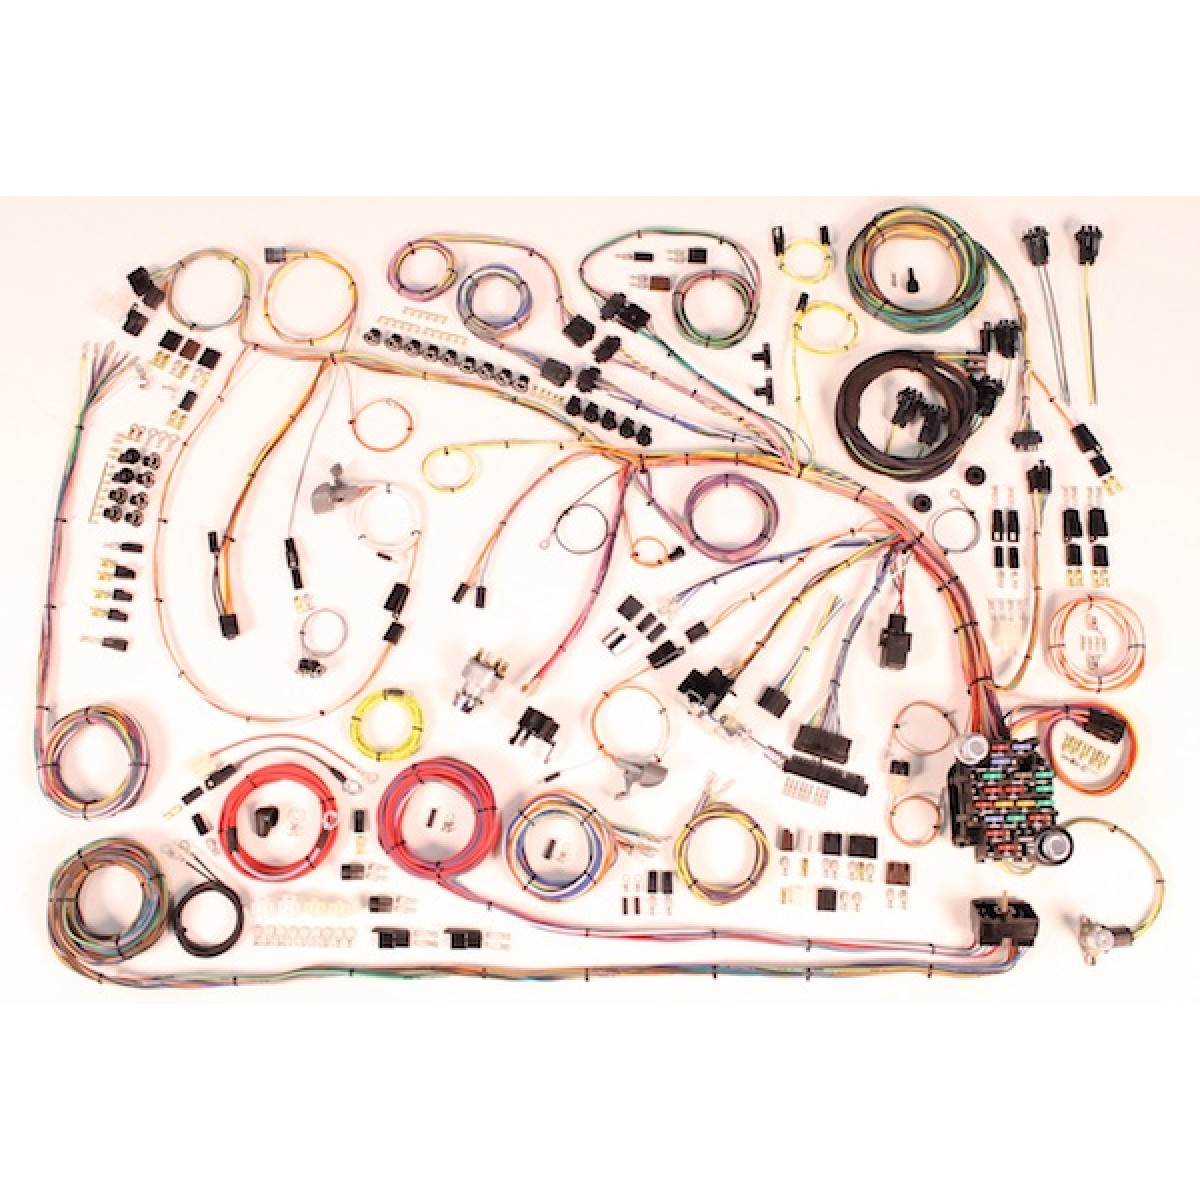 1965 impala wiring harness enthusiast wiring diagrams u2022 rh bwpartnersautos com 1966 impala wiring harness 1966 impala wiring harness